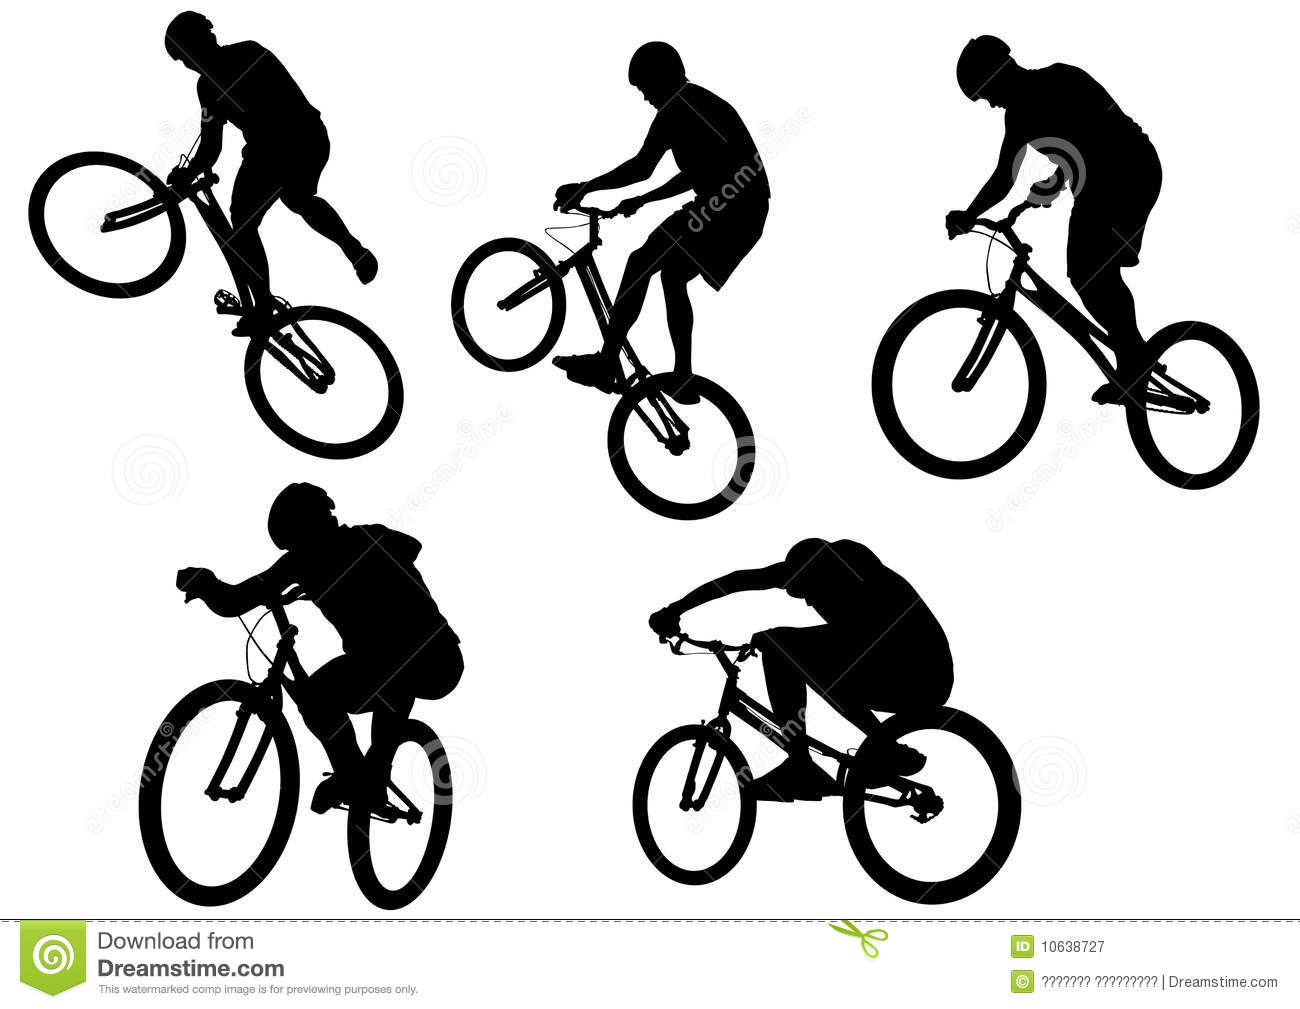 Extreme sport bike stock vector. Image of isolated ...